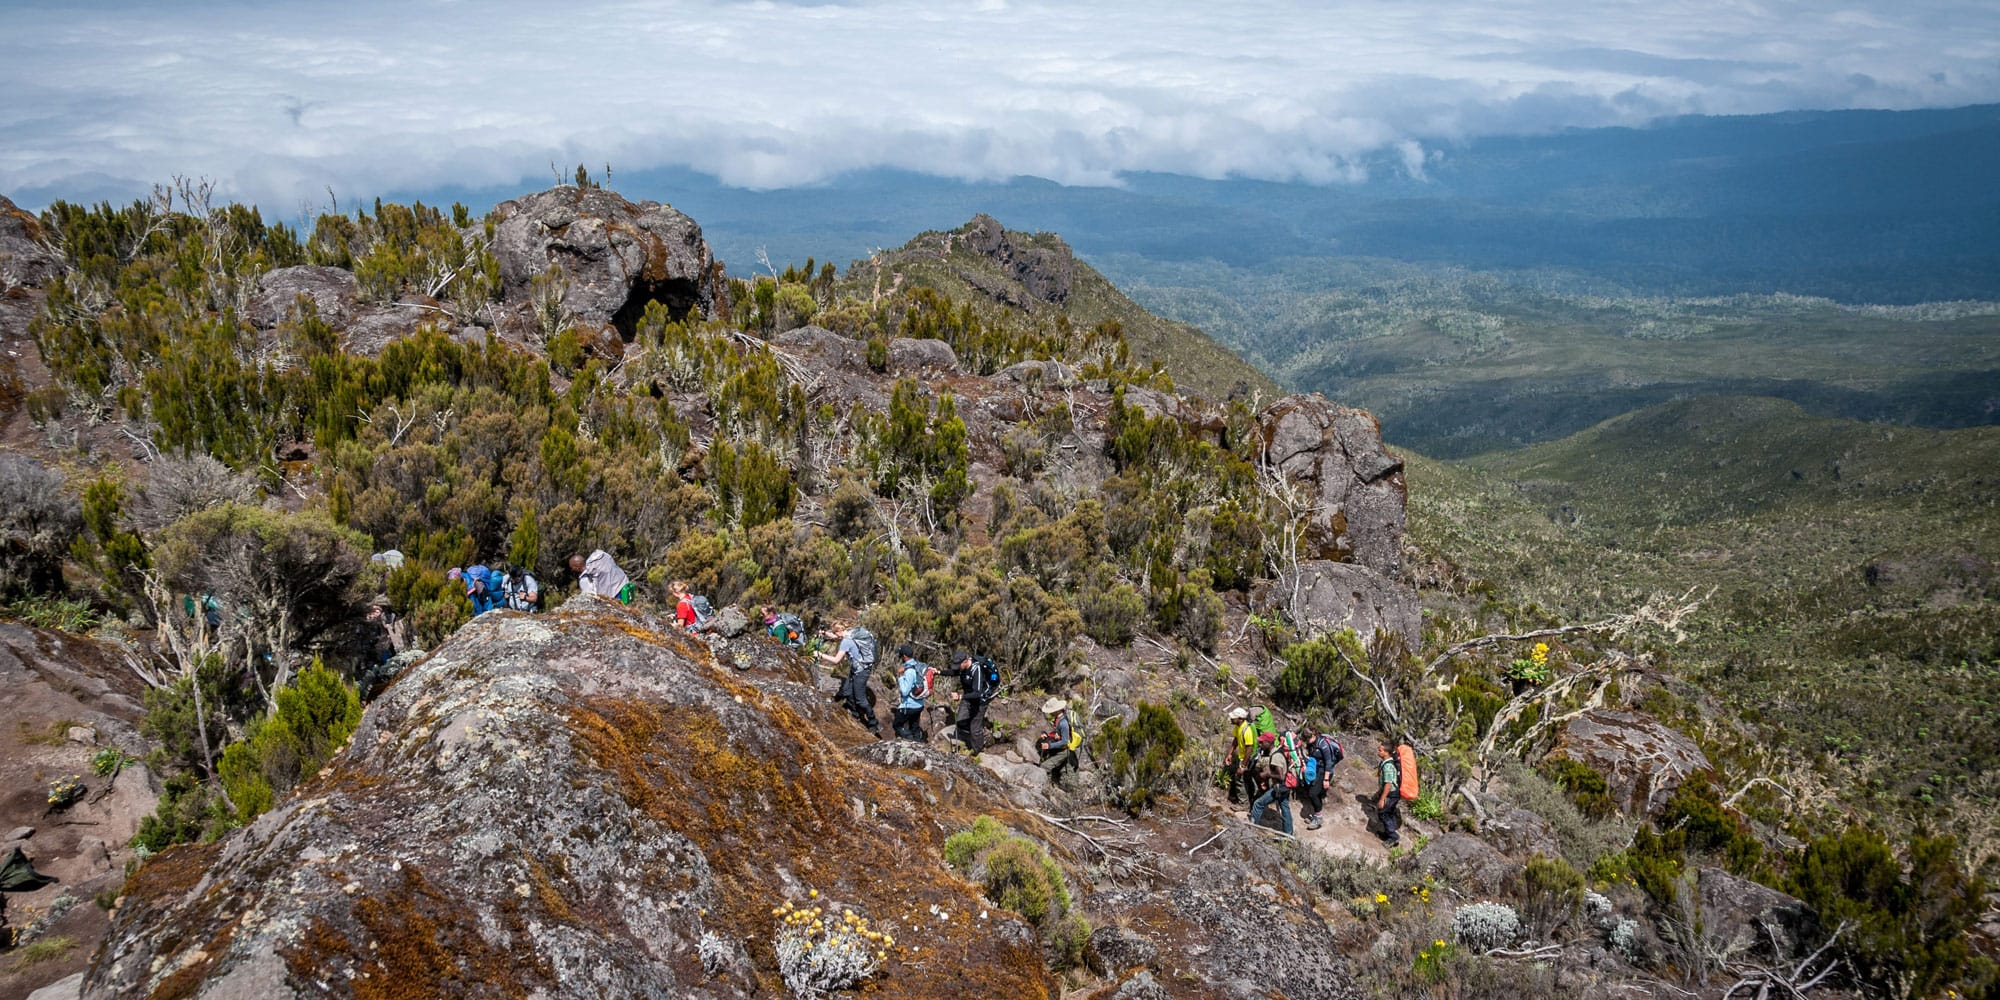 hiking through the afromontane landscape from the machame route